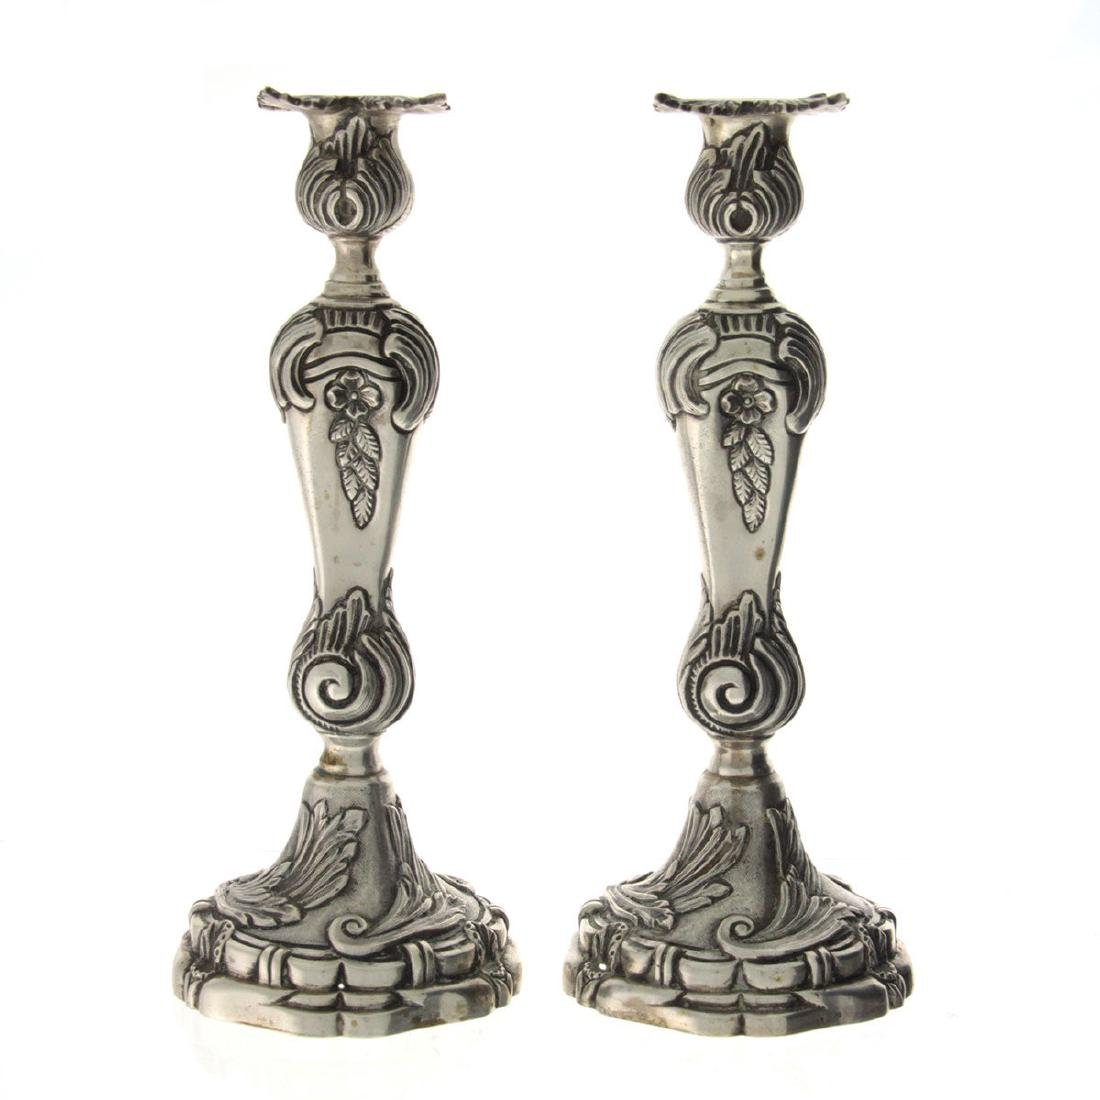 Pair of Massive Silver Candlesticks.